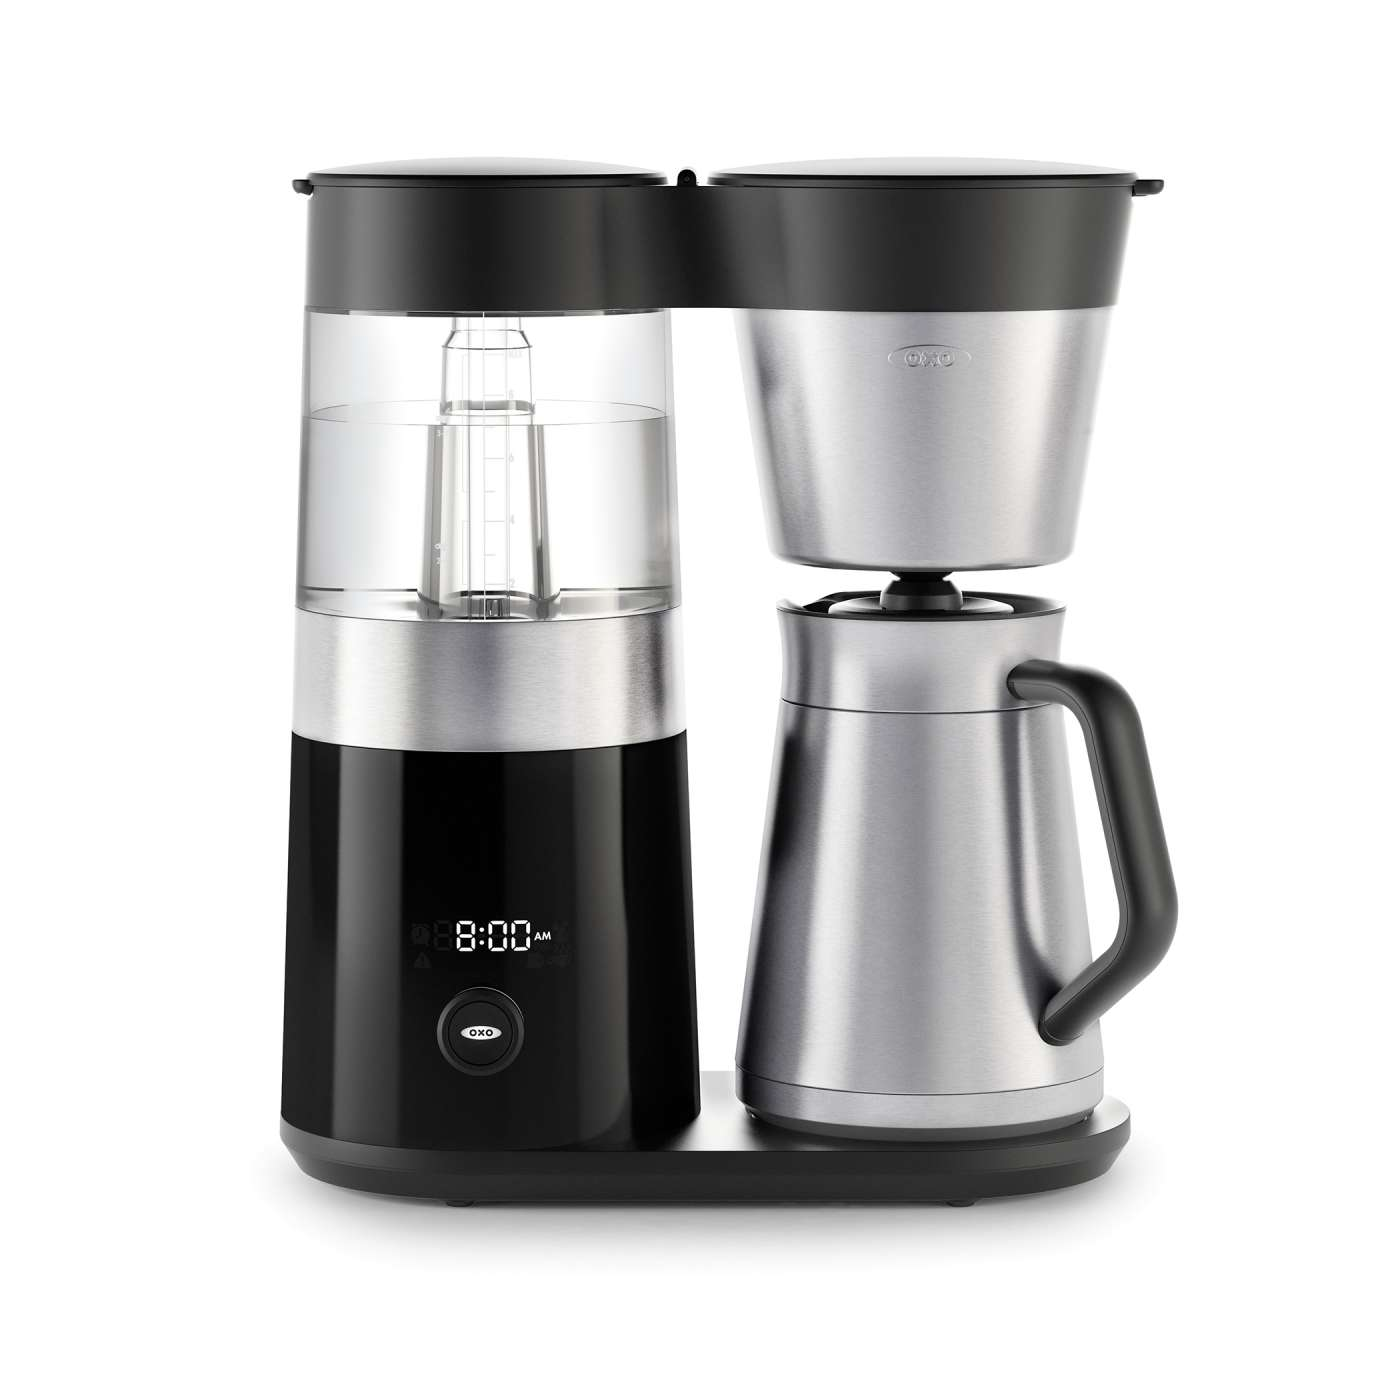 Oxo On 9 Cup Coffee Brewer An In Depth Review Roast Ratings